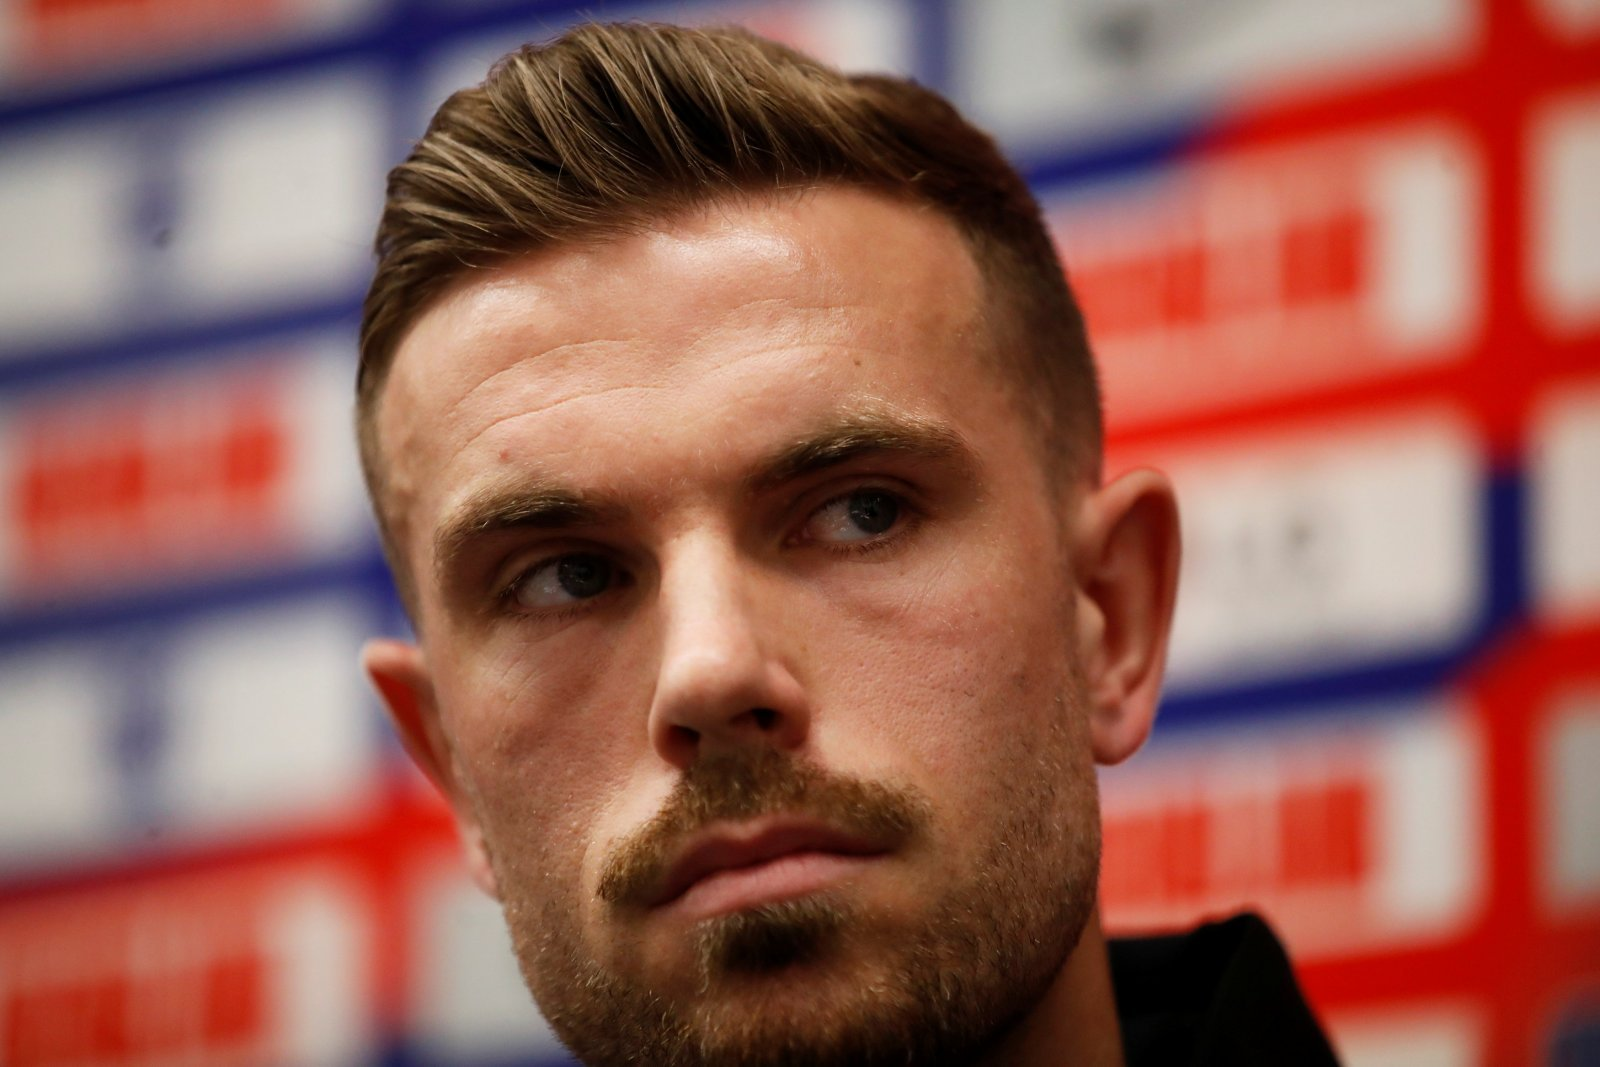 Jordan Henderson might be an awful lot better than people think